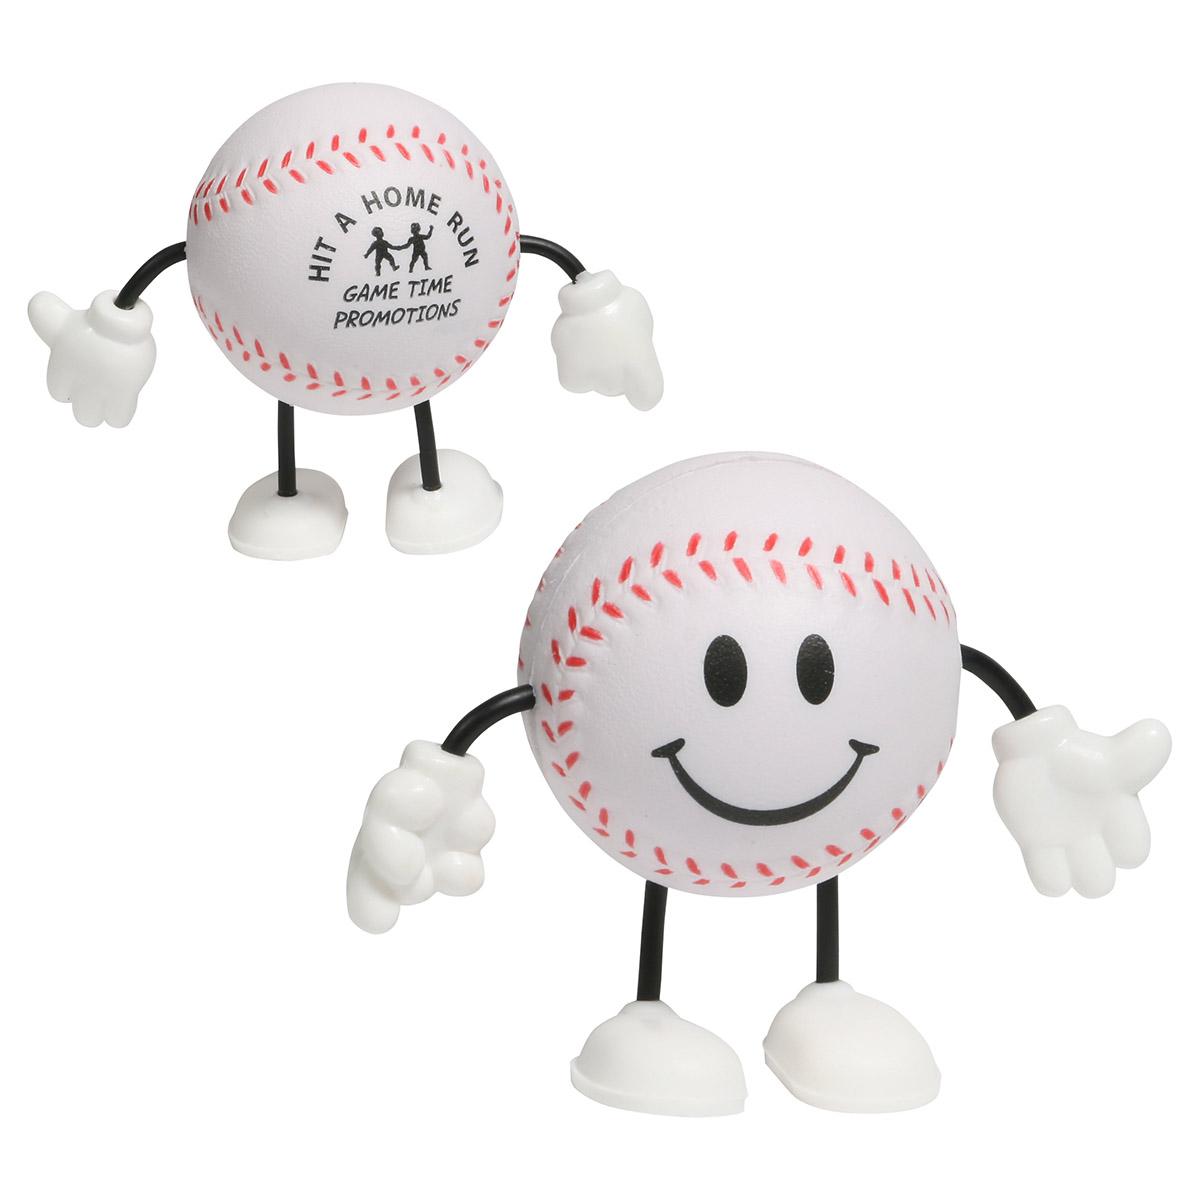 Baseball Figure Stress Reliever, LCH-BA01 - 1 Colour Imprint